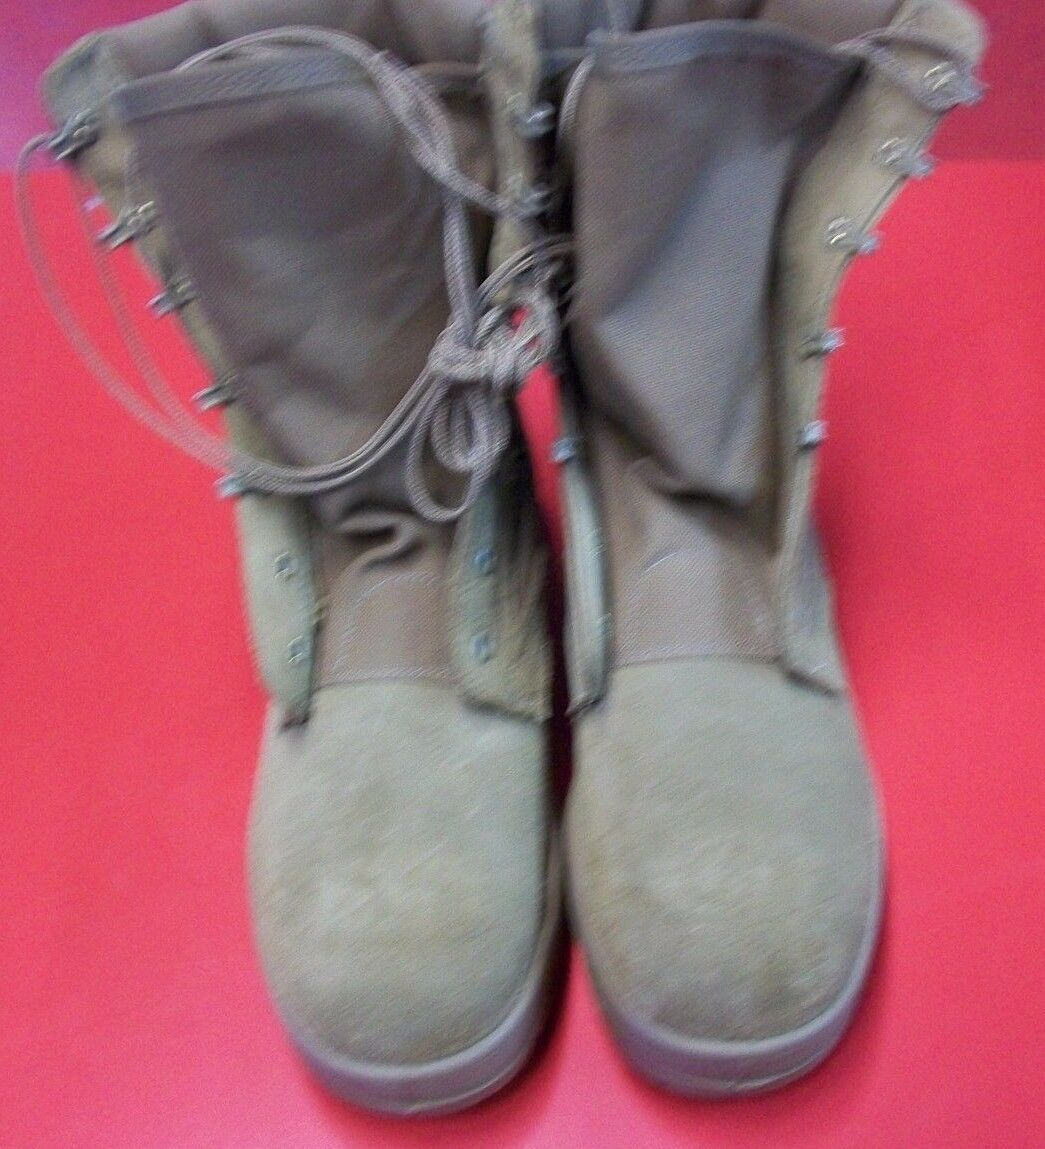 McRae Military Coyote Hot 6.5 Weather Combat Boots Belleville Bates 6.5 Hot R e213b0